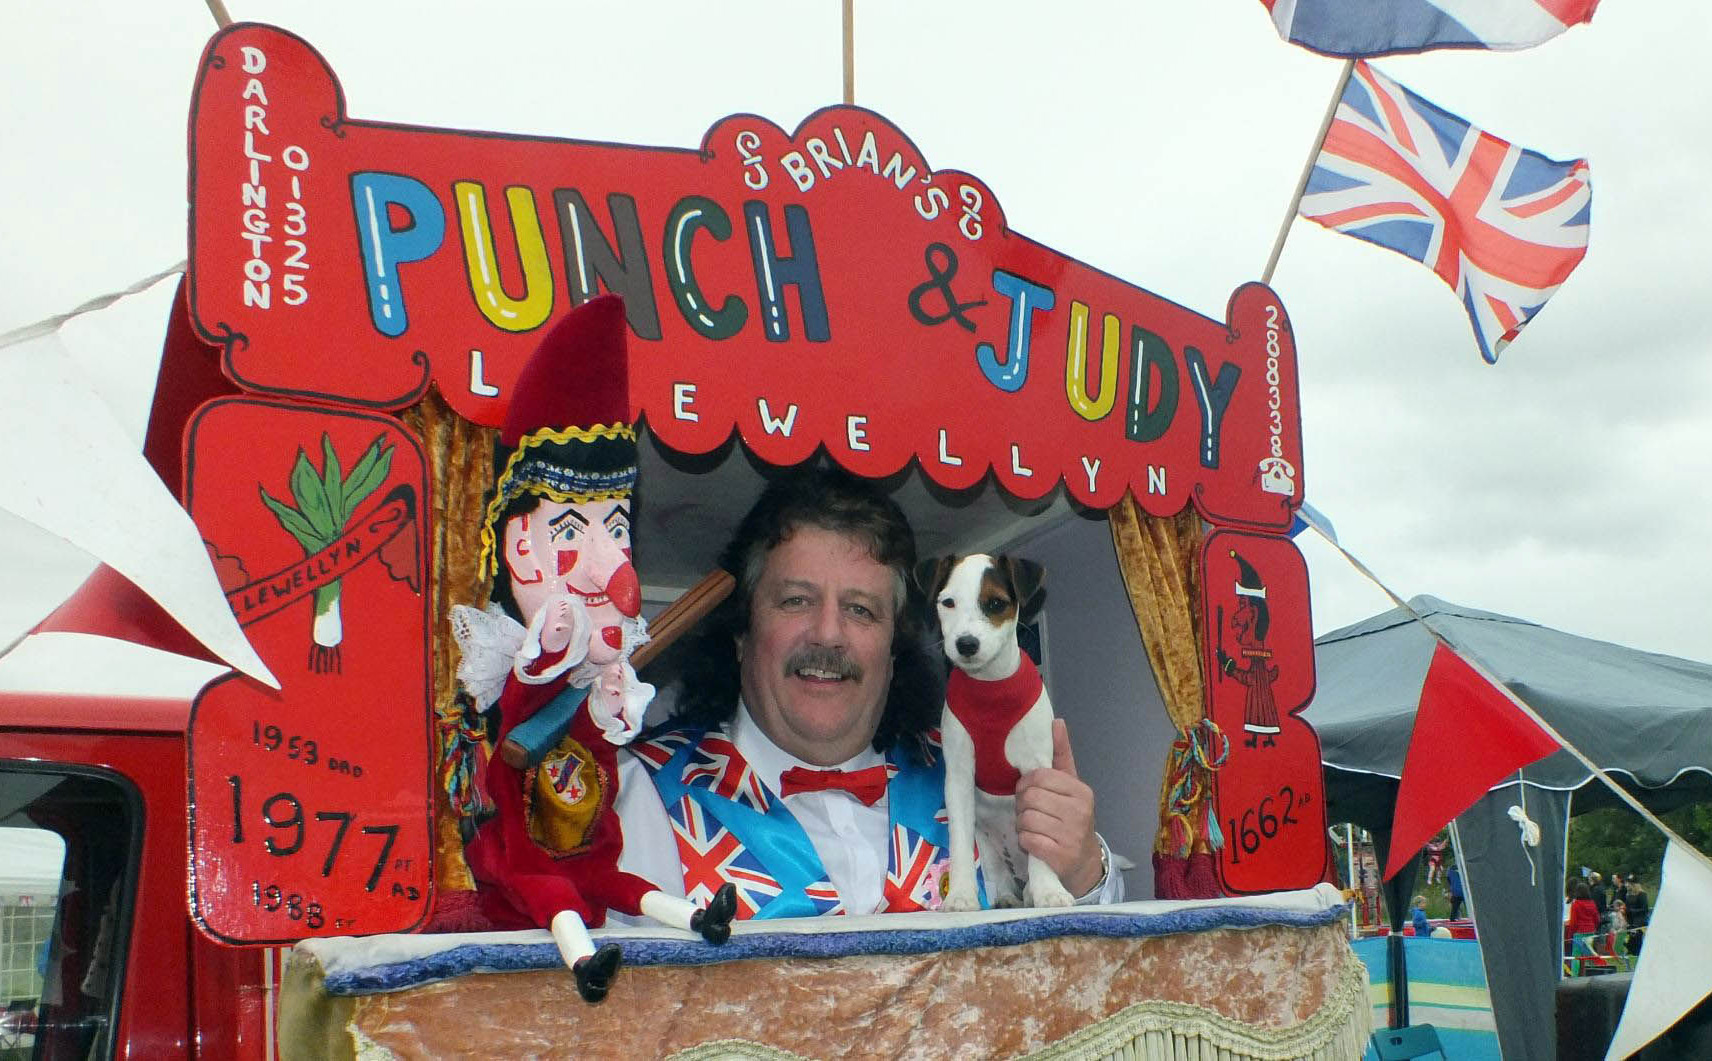 Punch and Judy man Brian Llewellyn, 64, who denies his show glorifies domestic violence after a school cancelled a booking when he refused to stop Mr Punch from hitting his wife